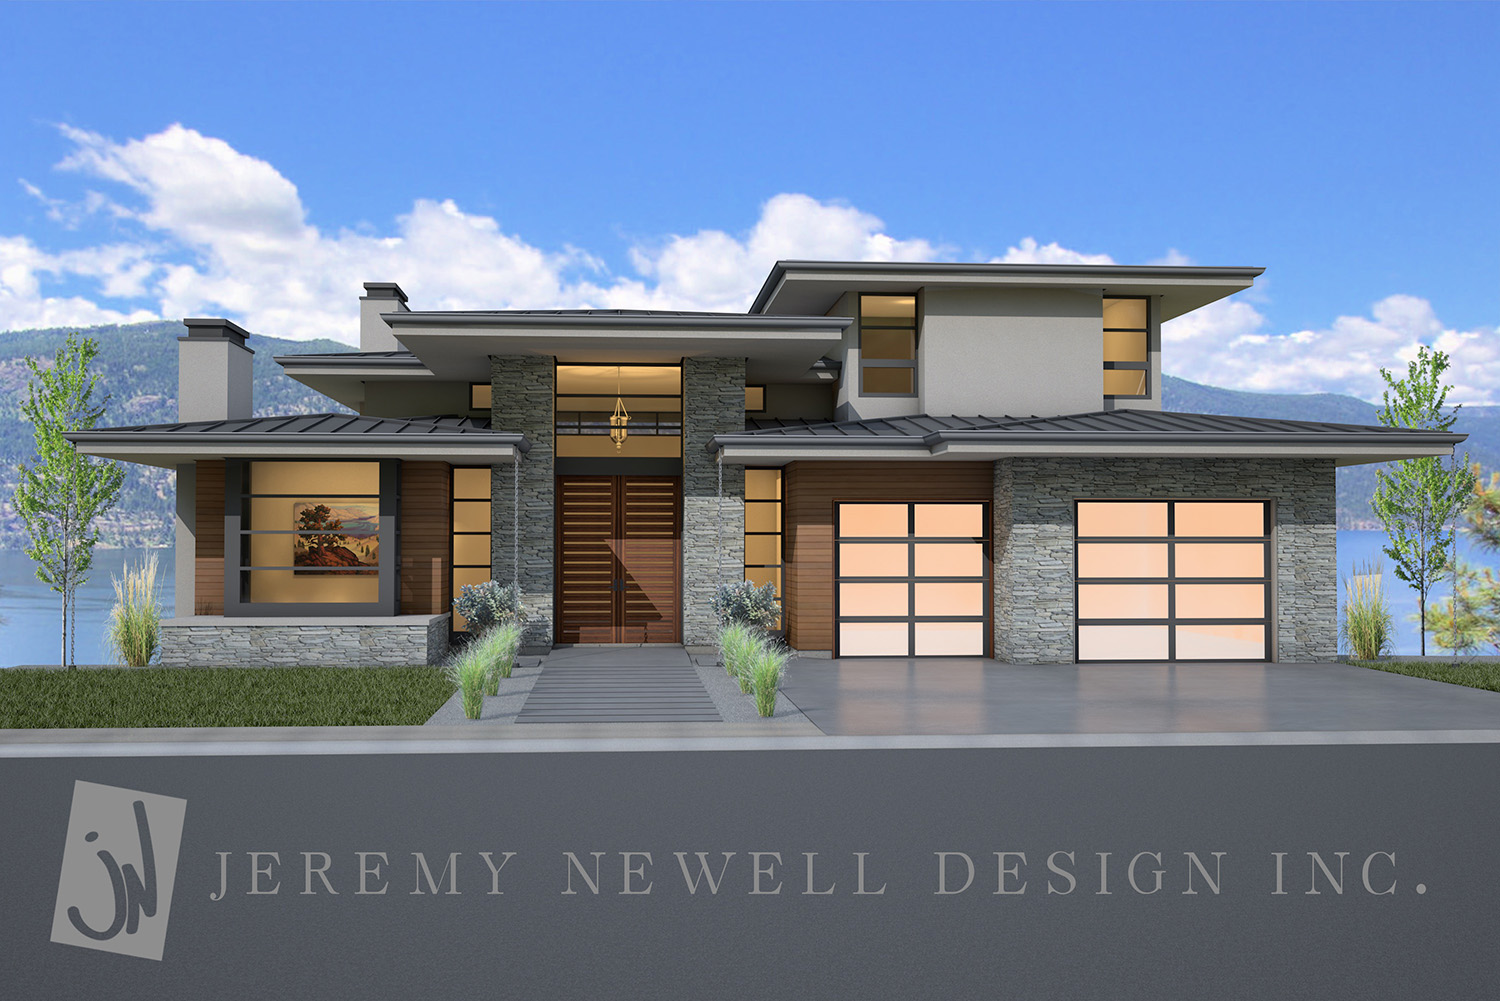 House exteriors joy studio design gallery best design for Small house design kelowna